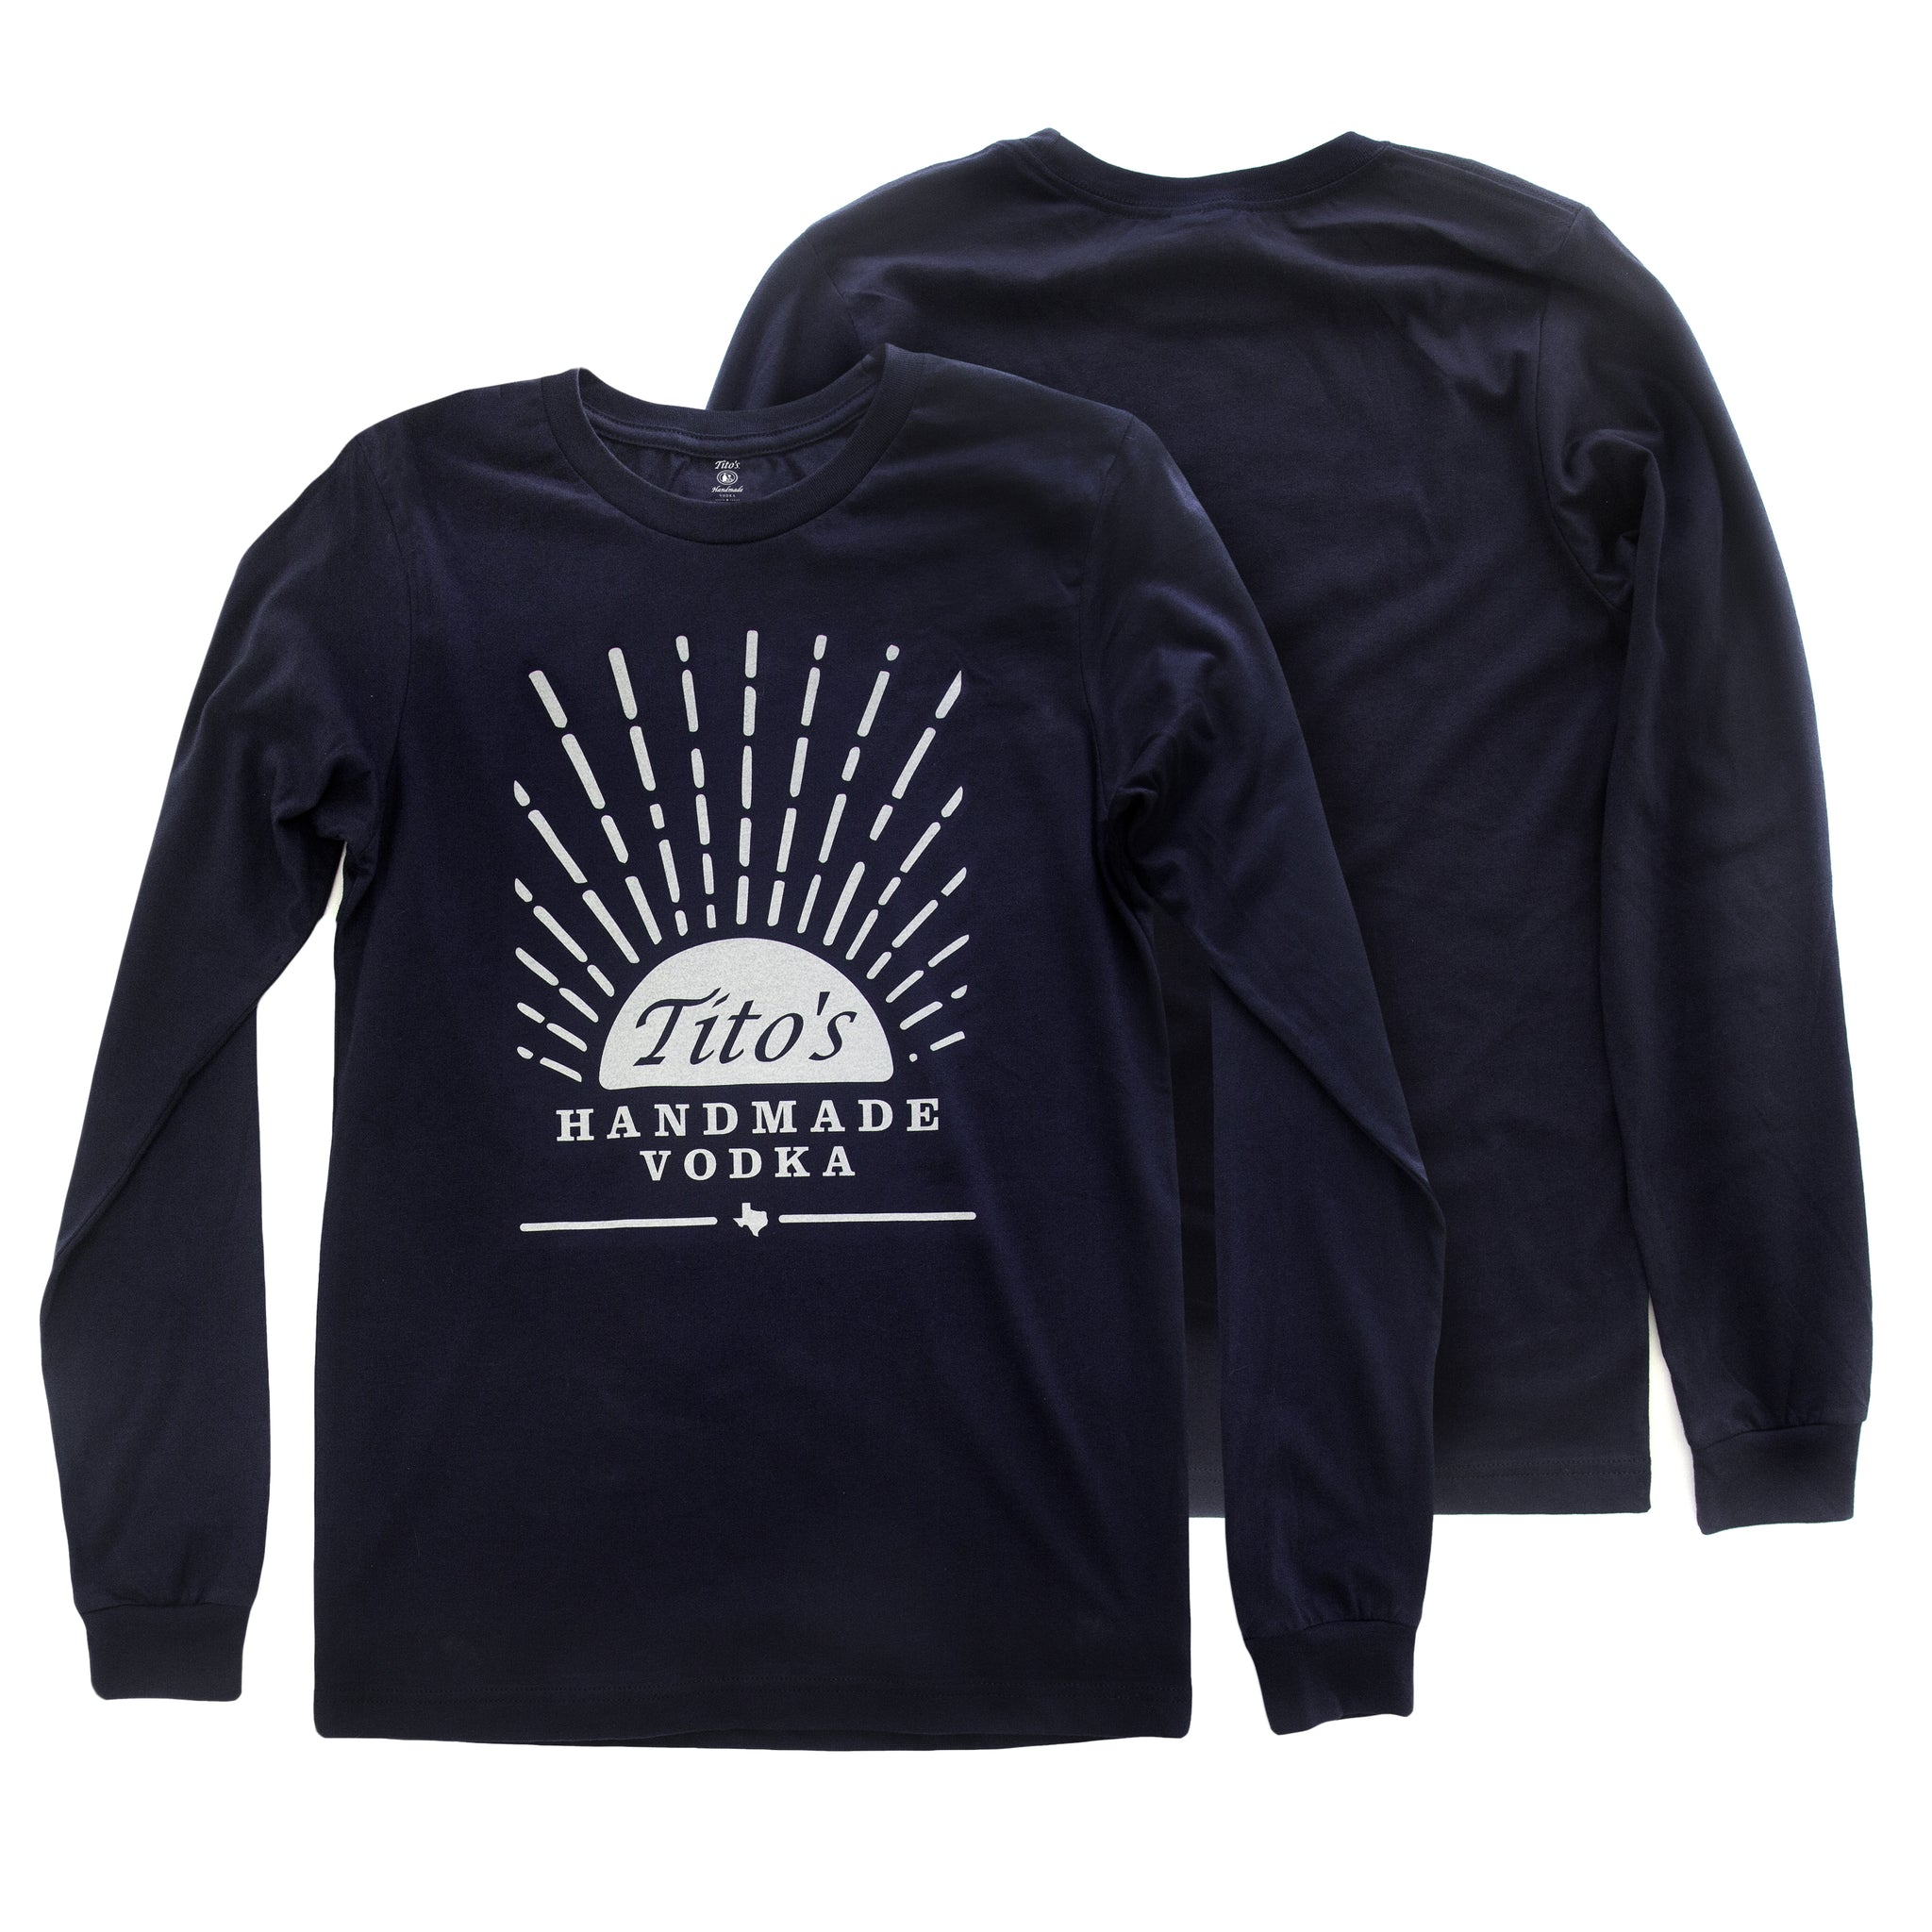 Navy long-sleeved t-shirt with Tito's Handmade Vodka mark and sunrise design on the front and blank back